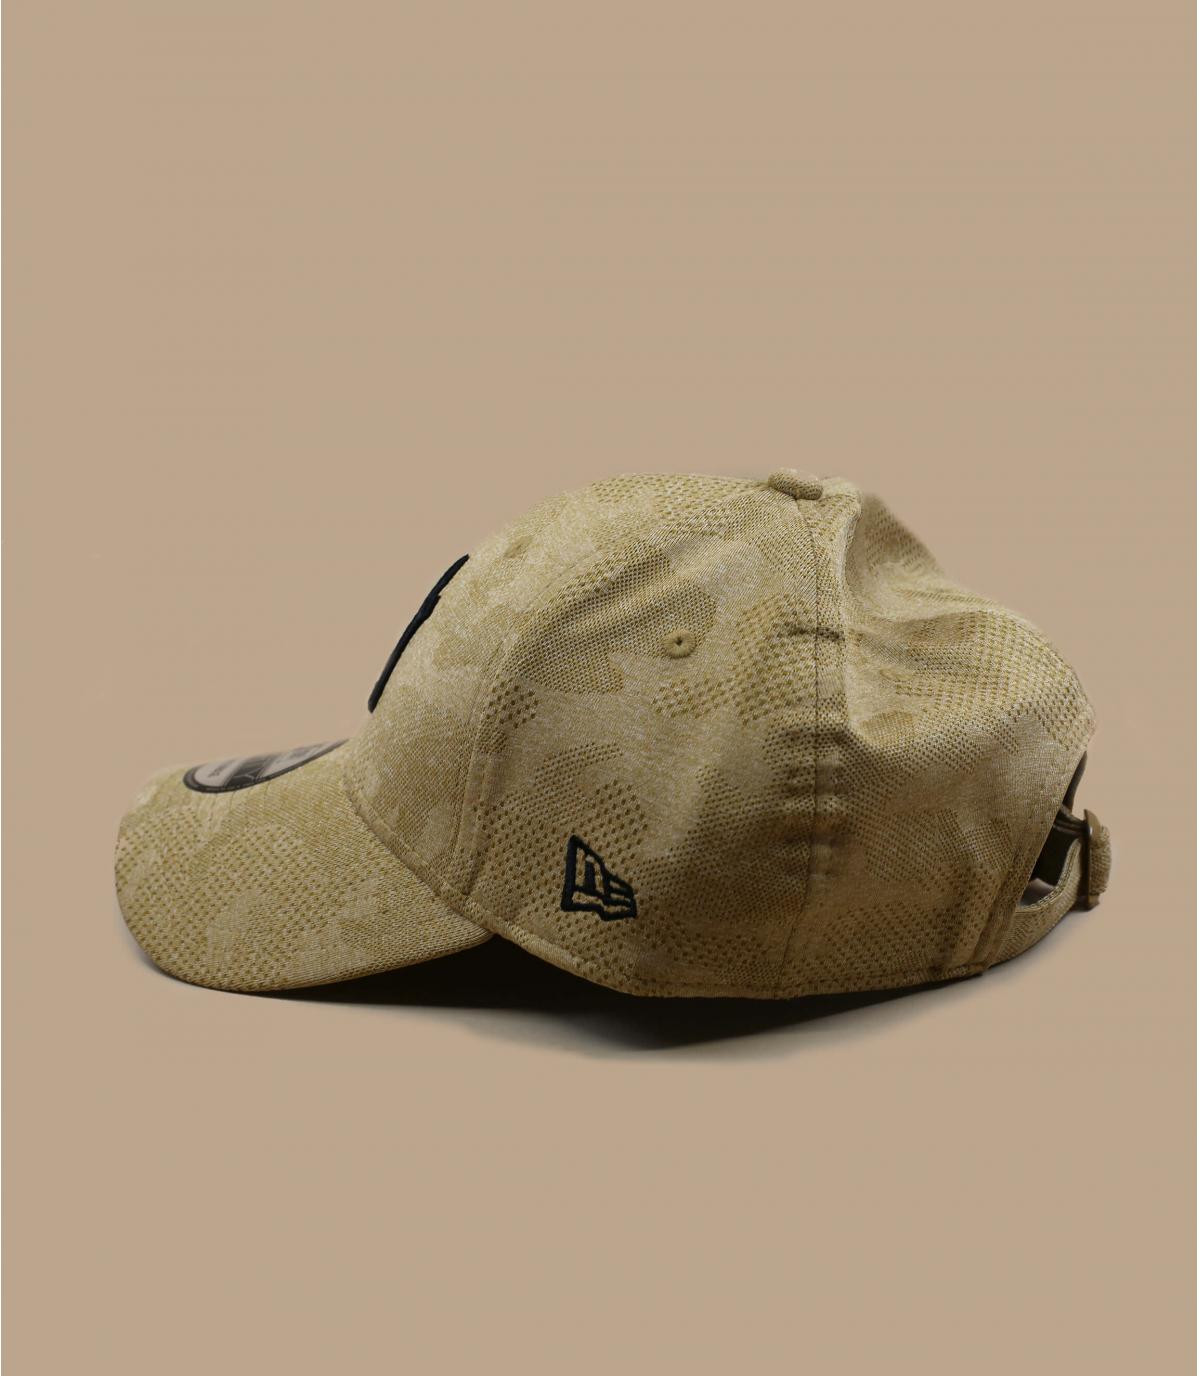 Détails Casquette Engineered Plus 940 NY wheat - image 4